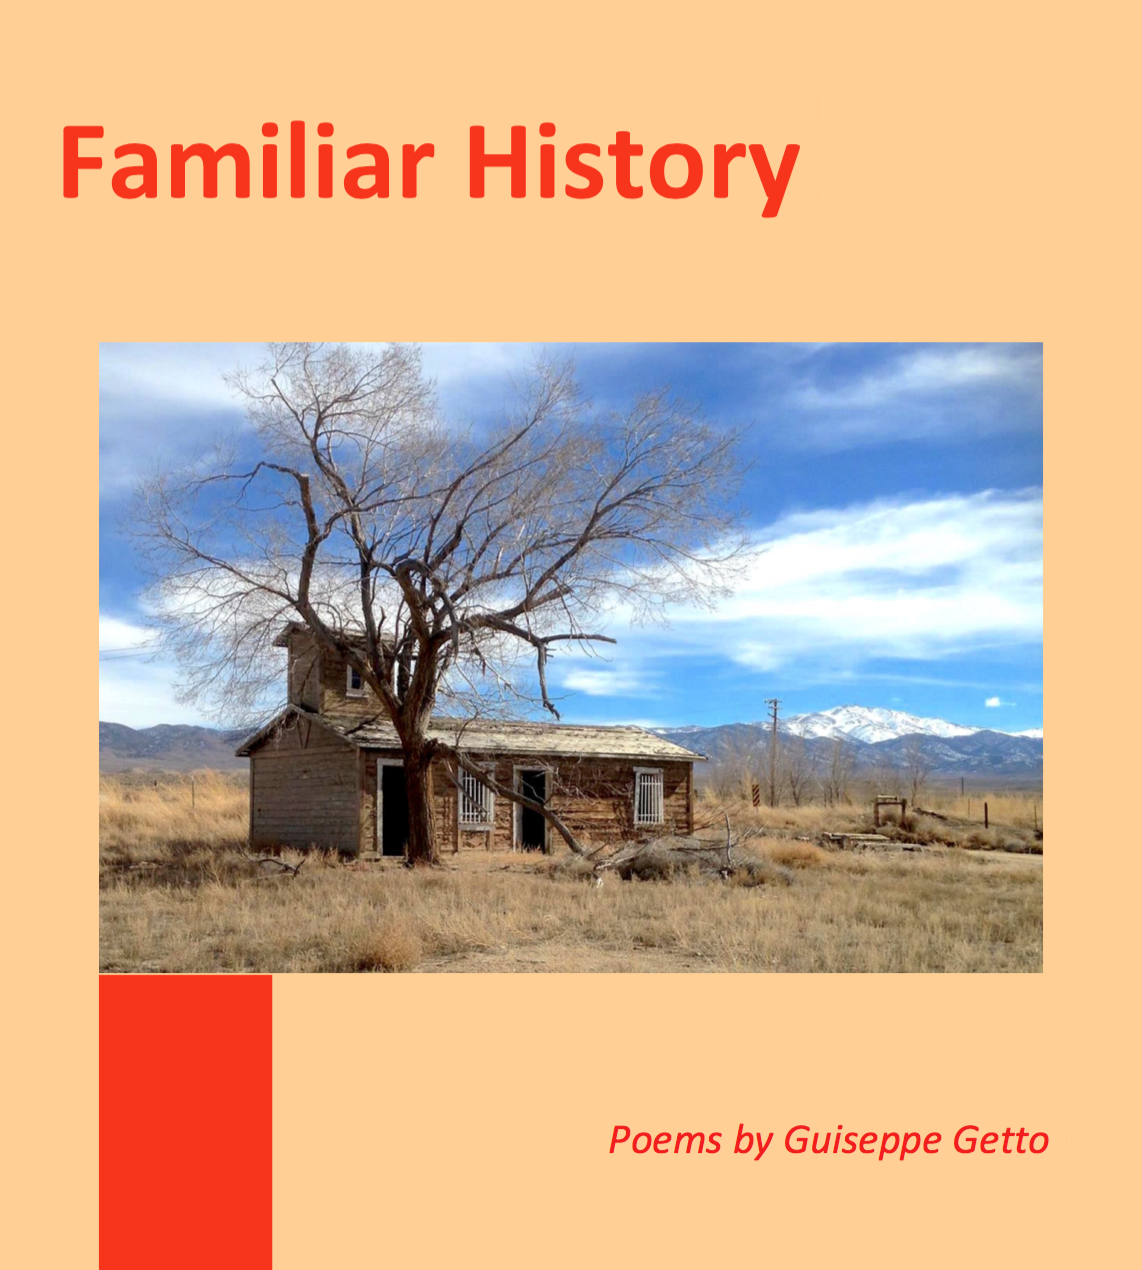 The cover of my book of poetry about the American west: Familiar History